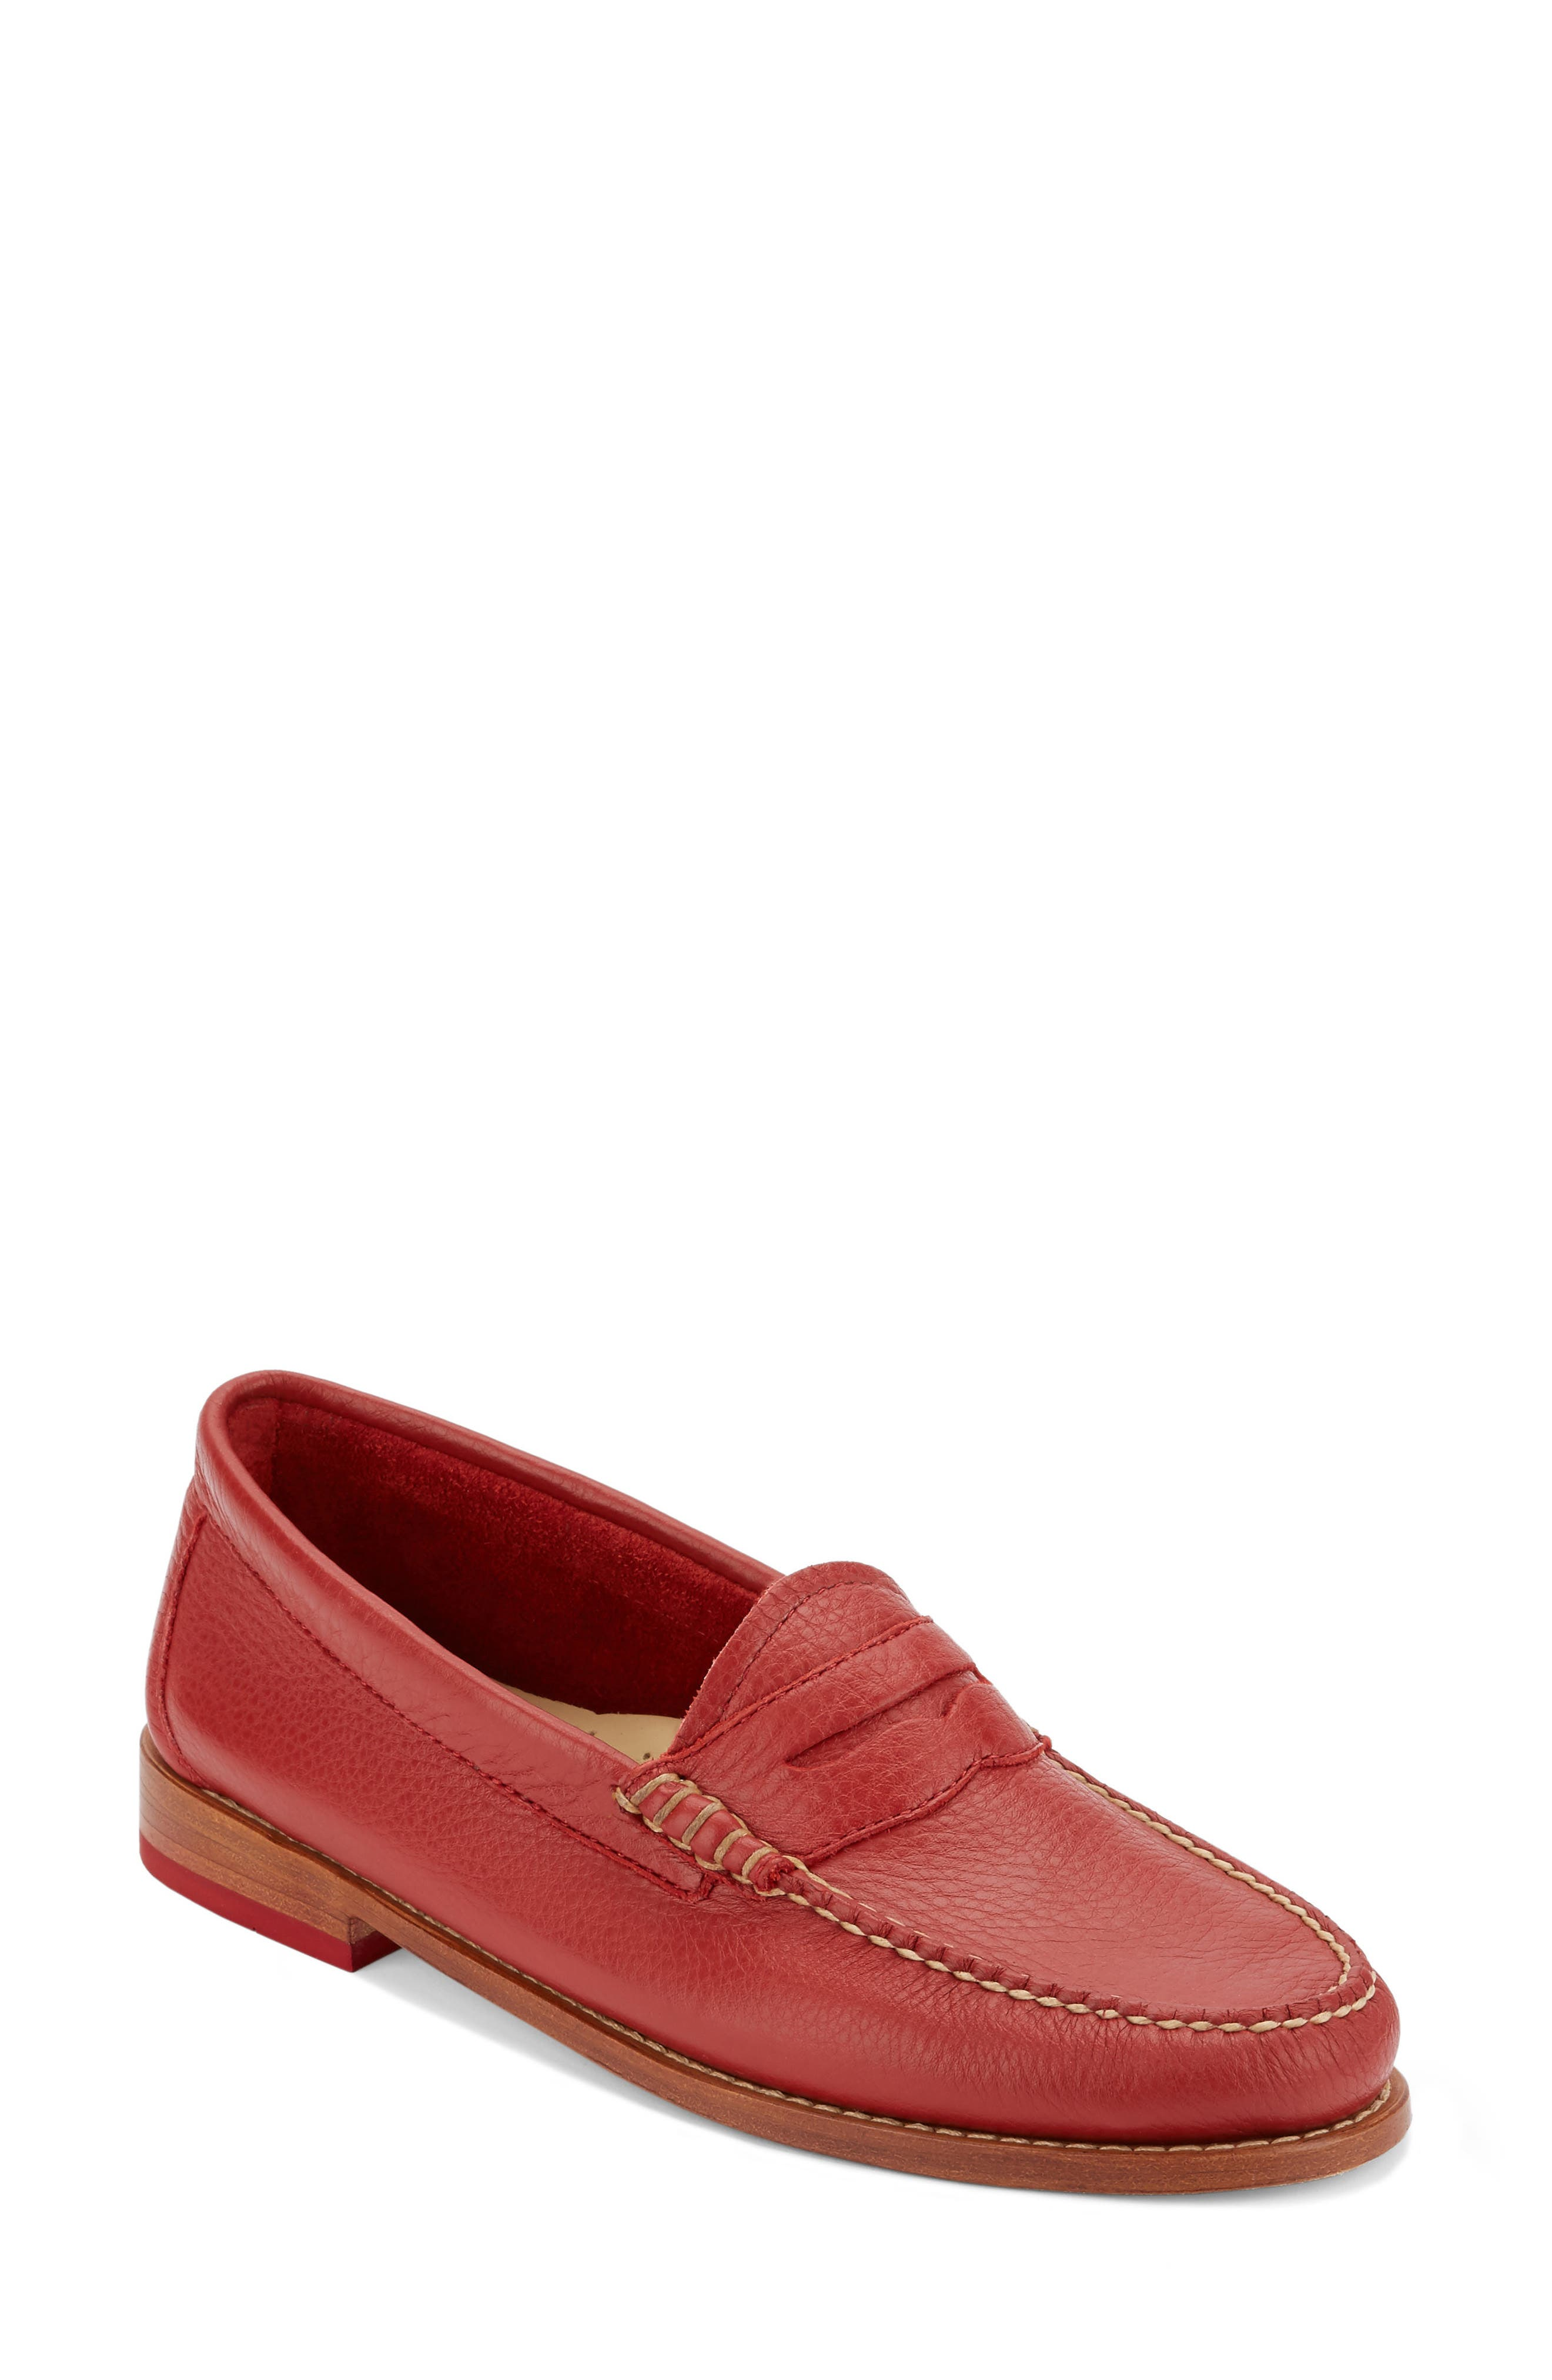 'Whitney' Loafer,                             Main thumbnail 13, color,